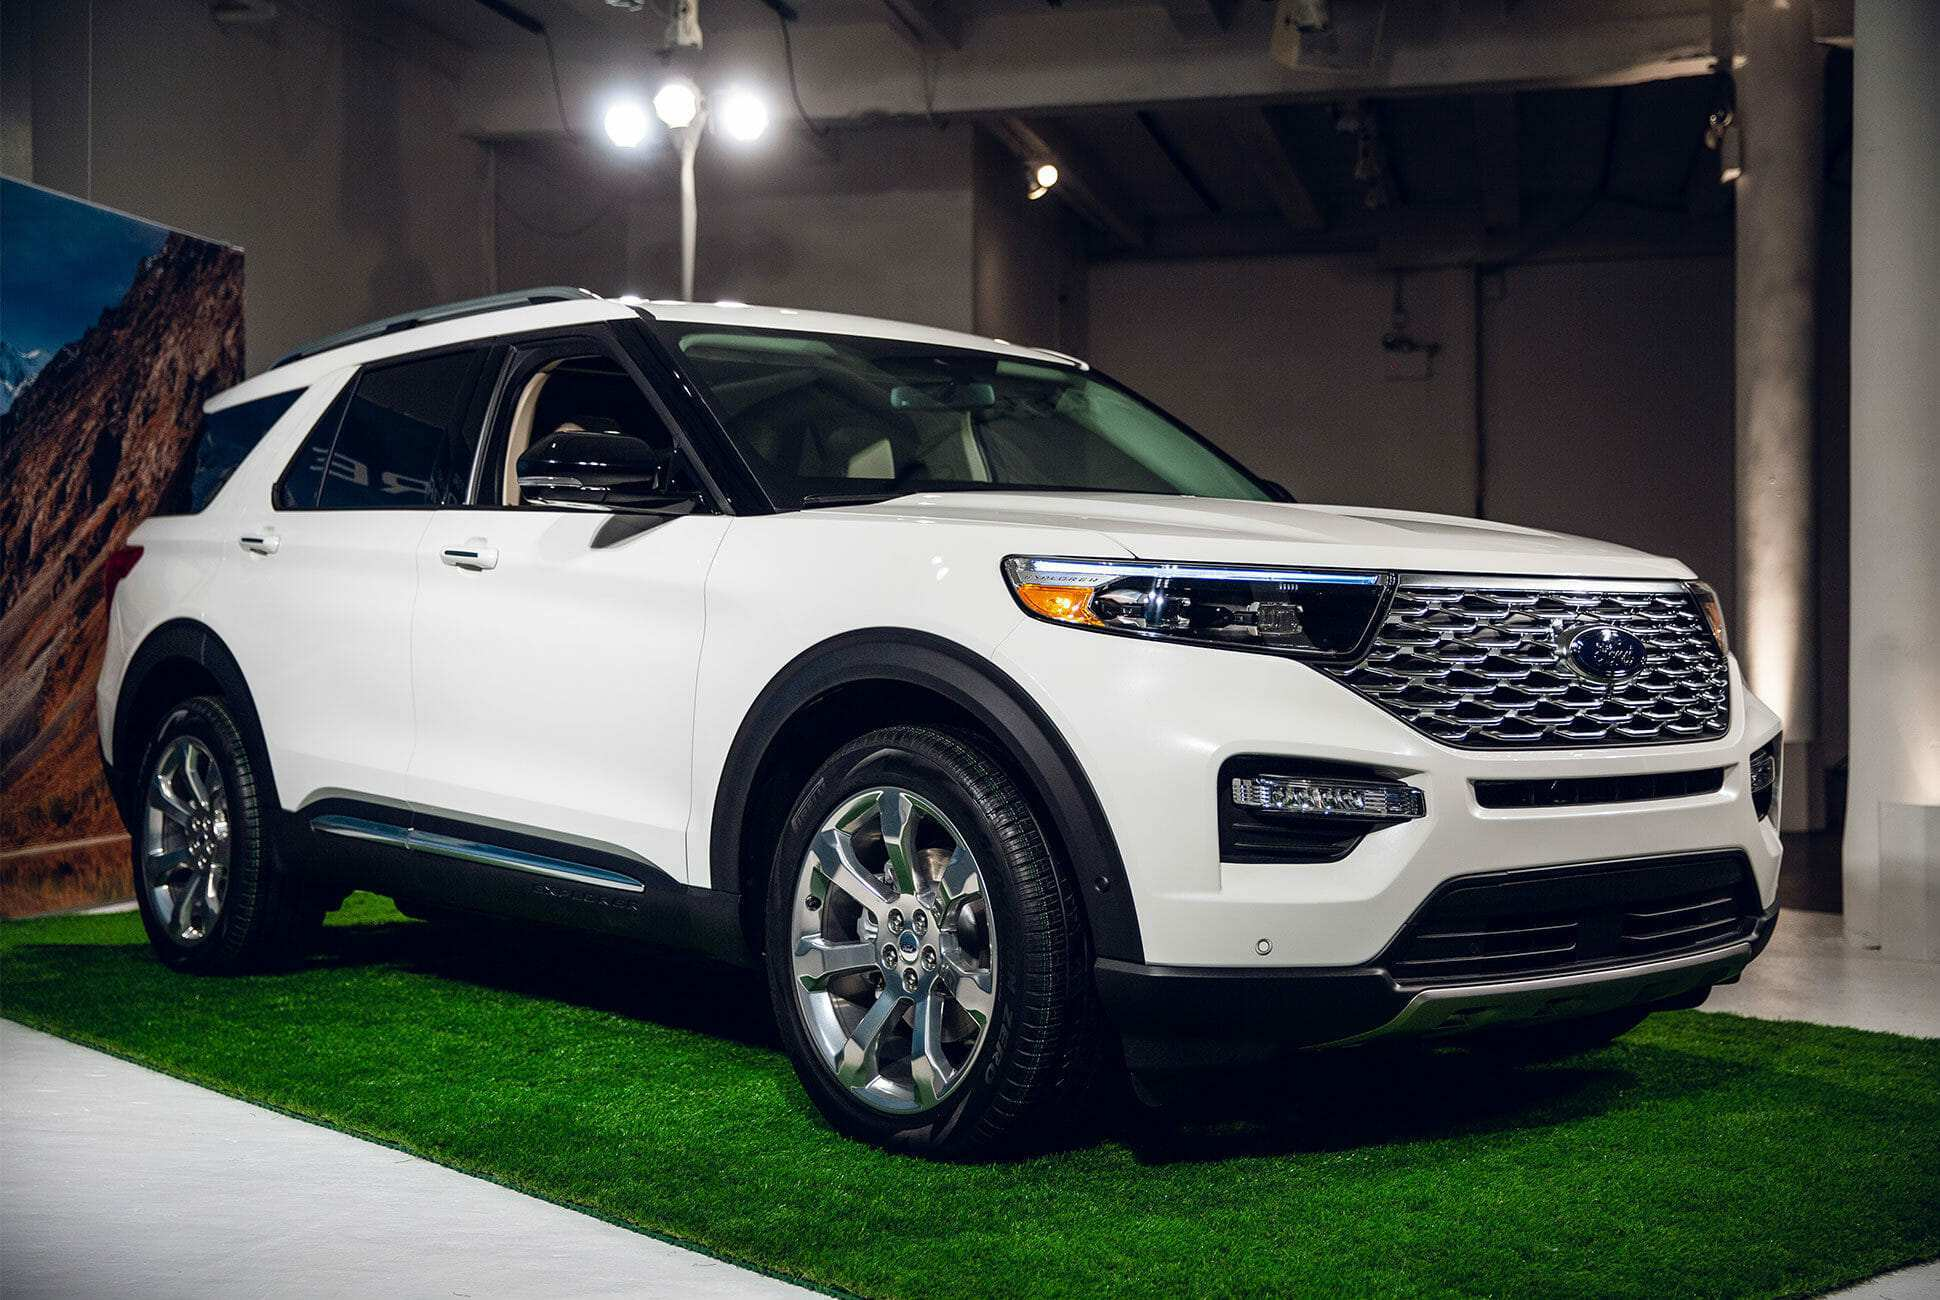 32 Concept of Ford New Explorer 2020 Pricing by Ford New Explorer 2020